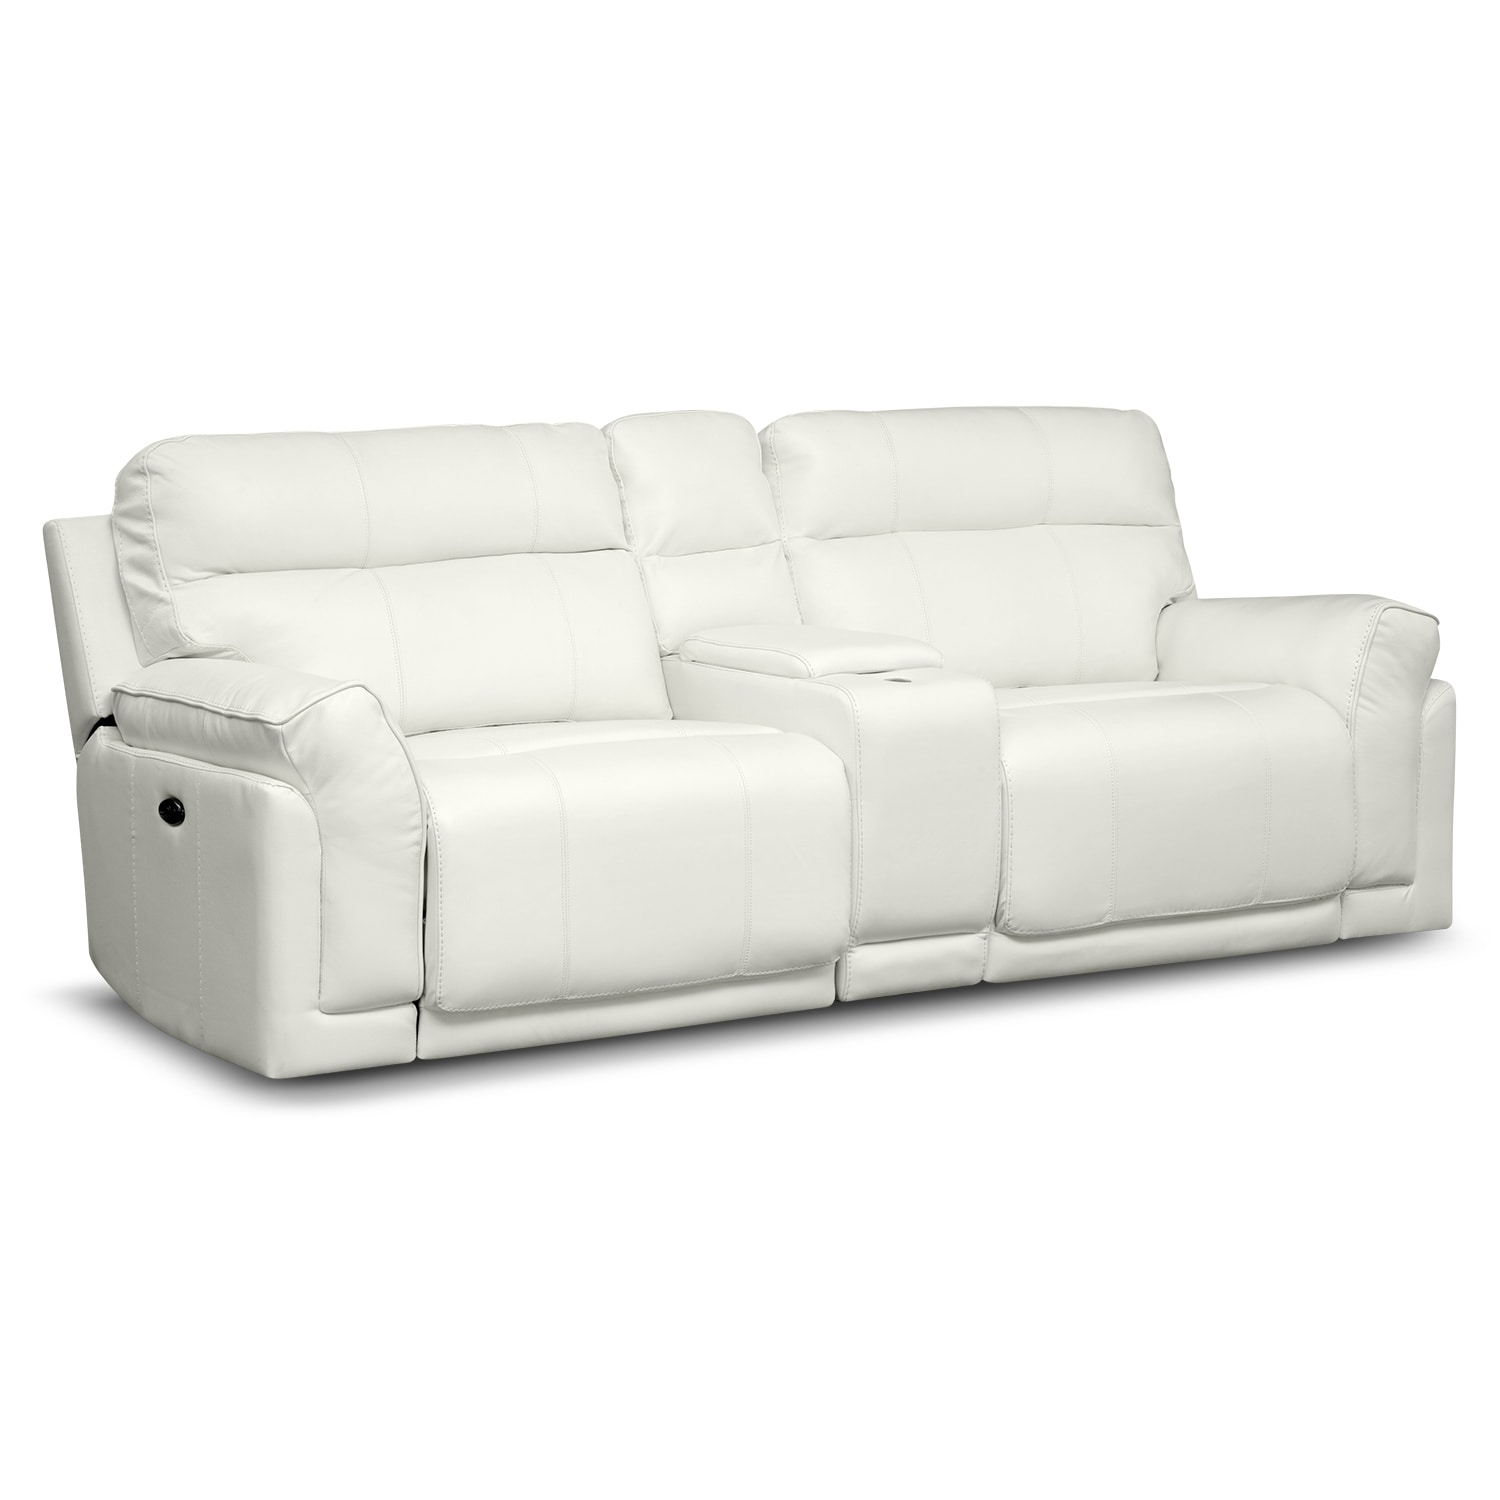 Antonio white leather power reclining sofa with console Leather loveseat recliners